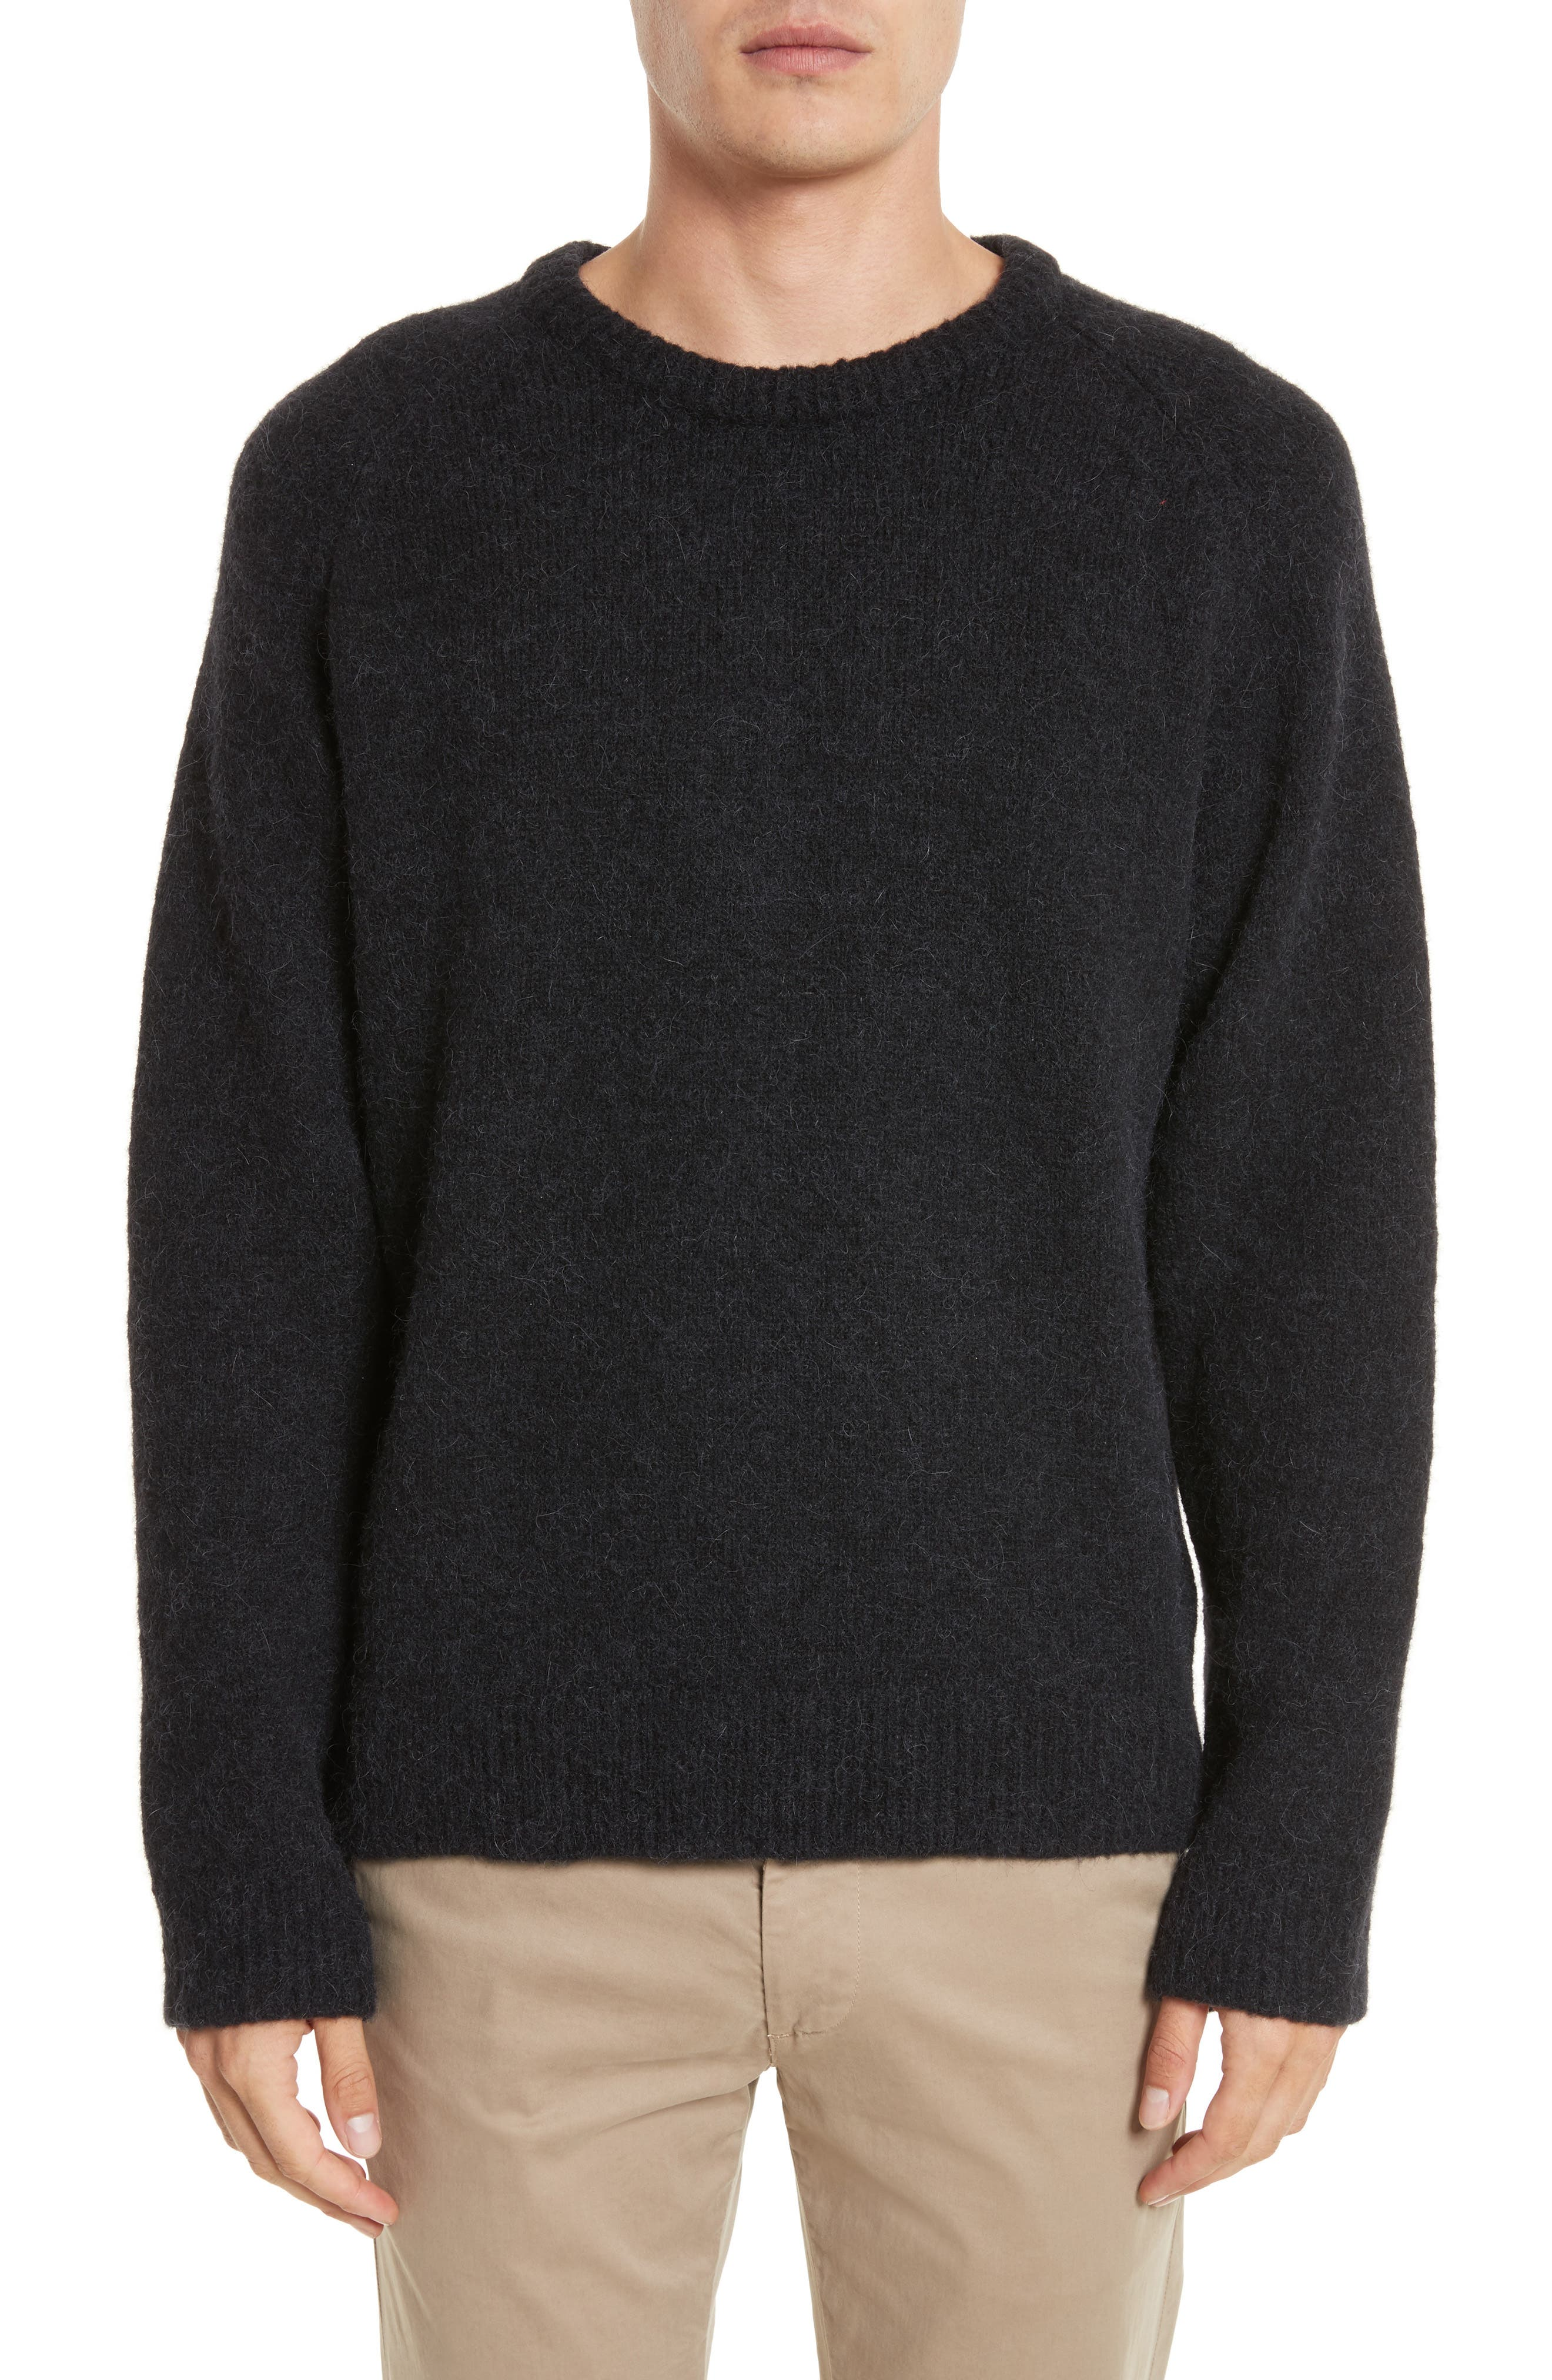 Alternate Image 1 Selected - OUR LEGACY Wool Blend Crewneck Sweater